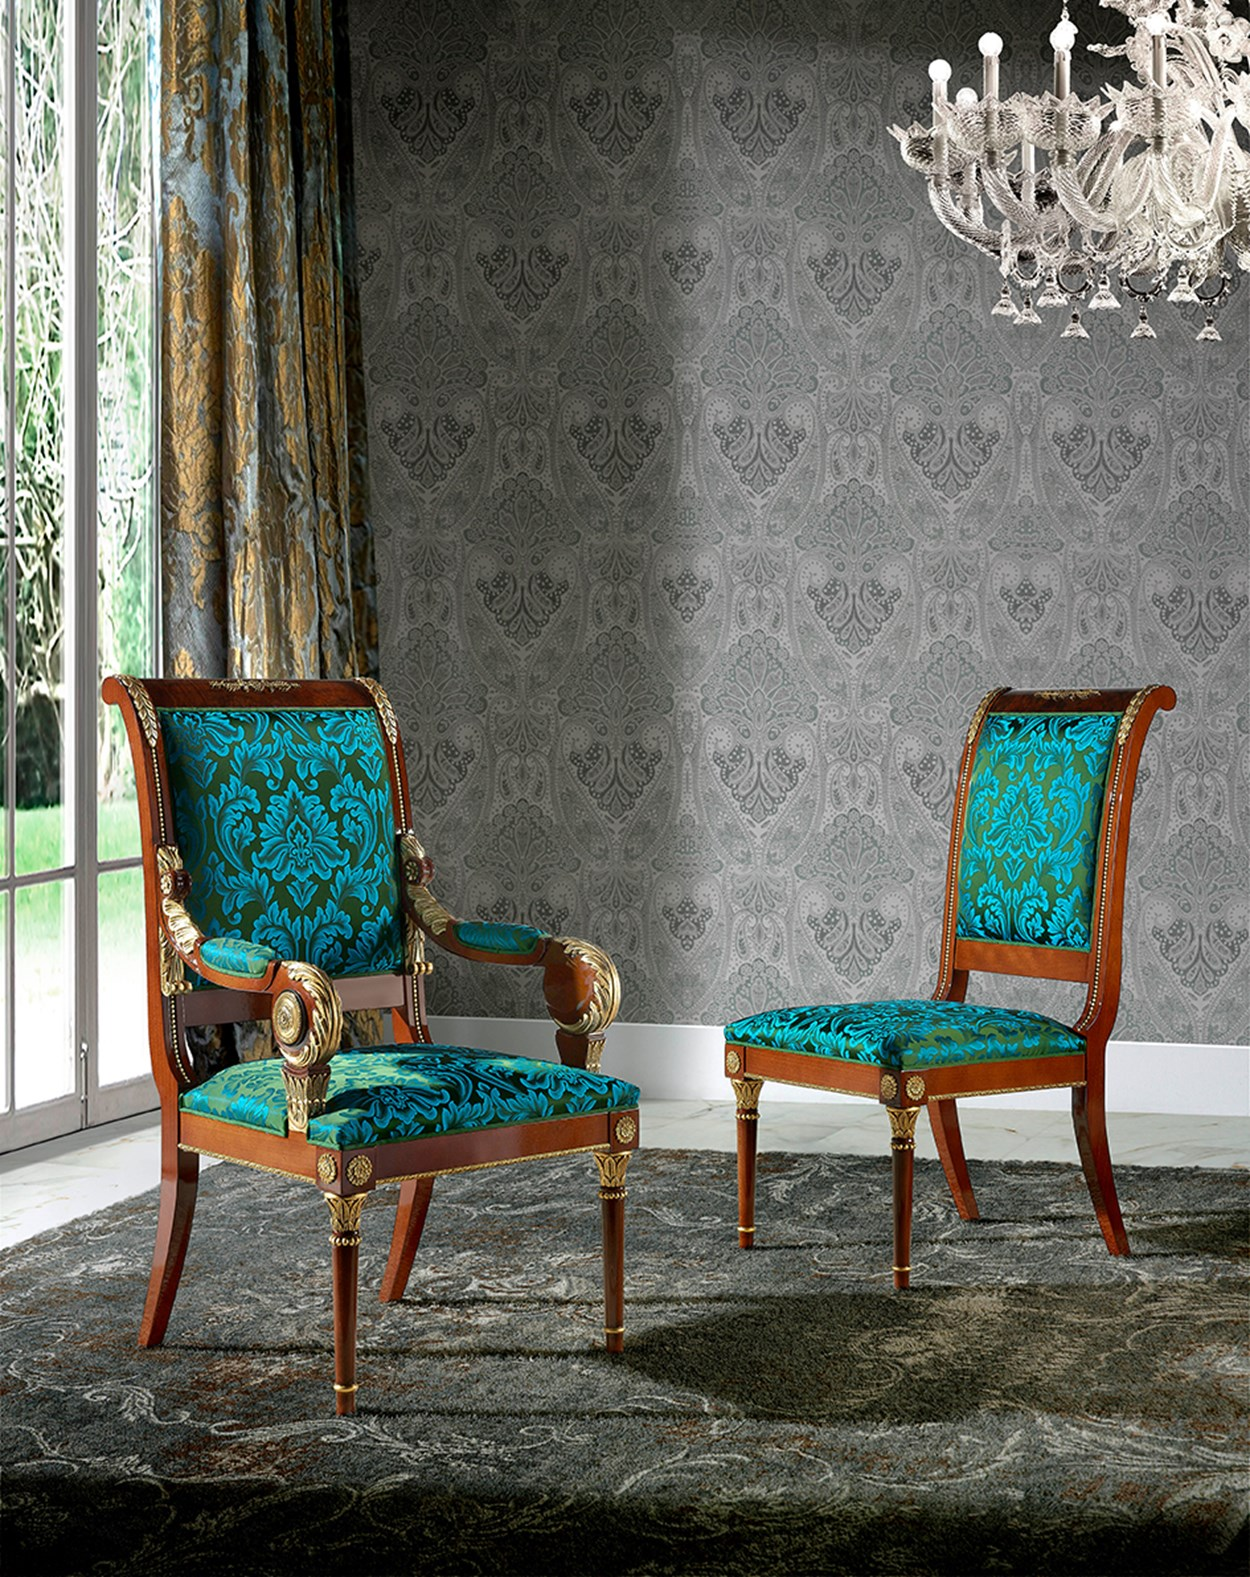 soher-palace-dining-chairs.jpg